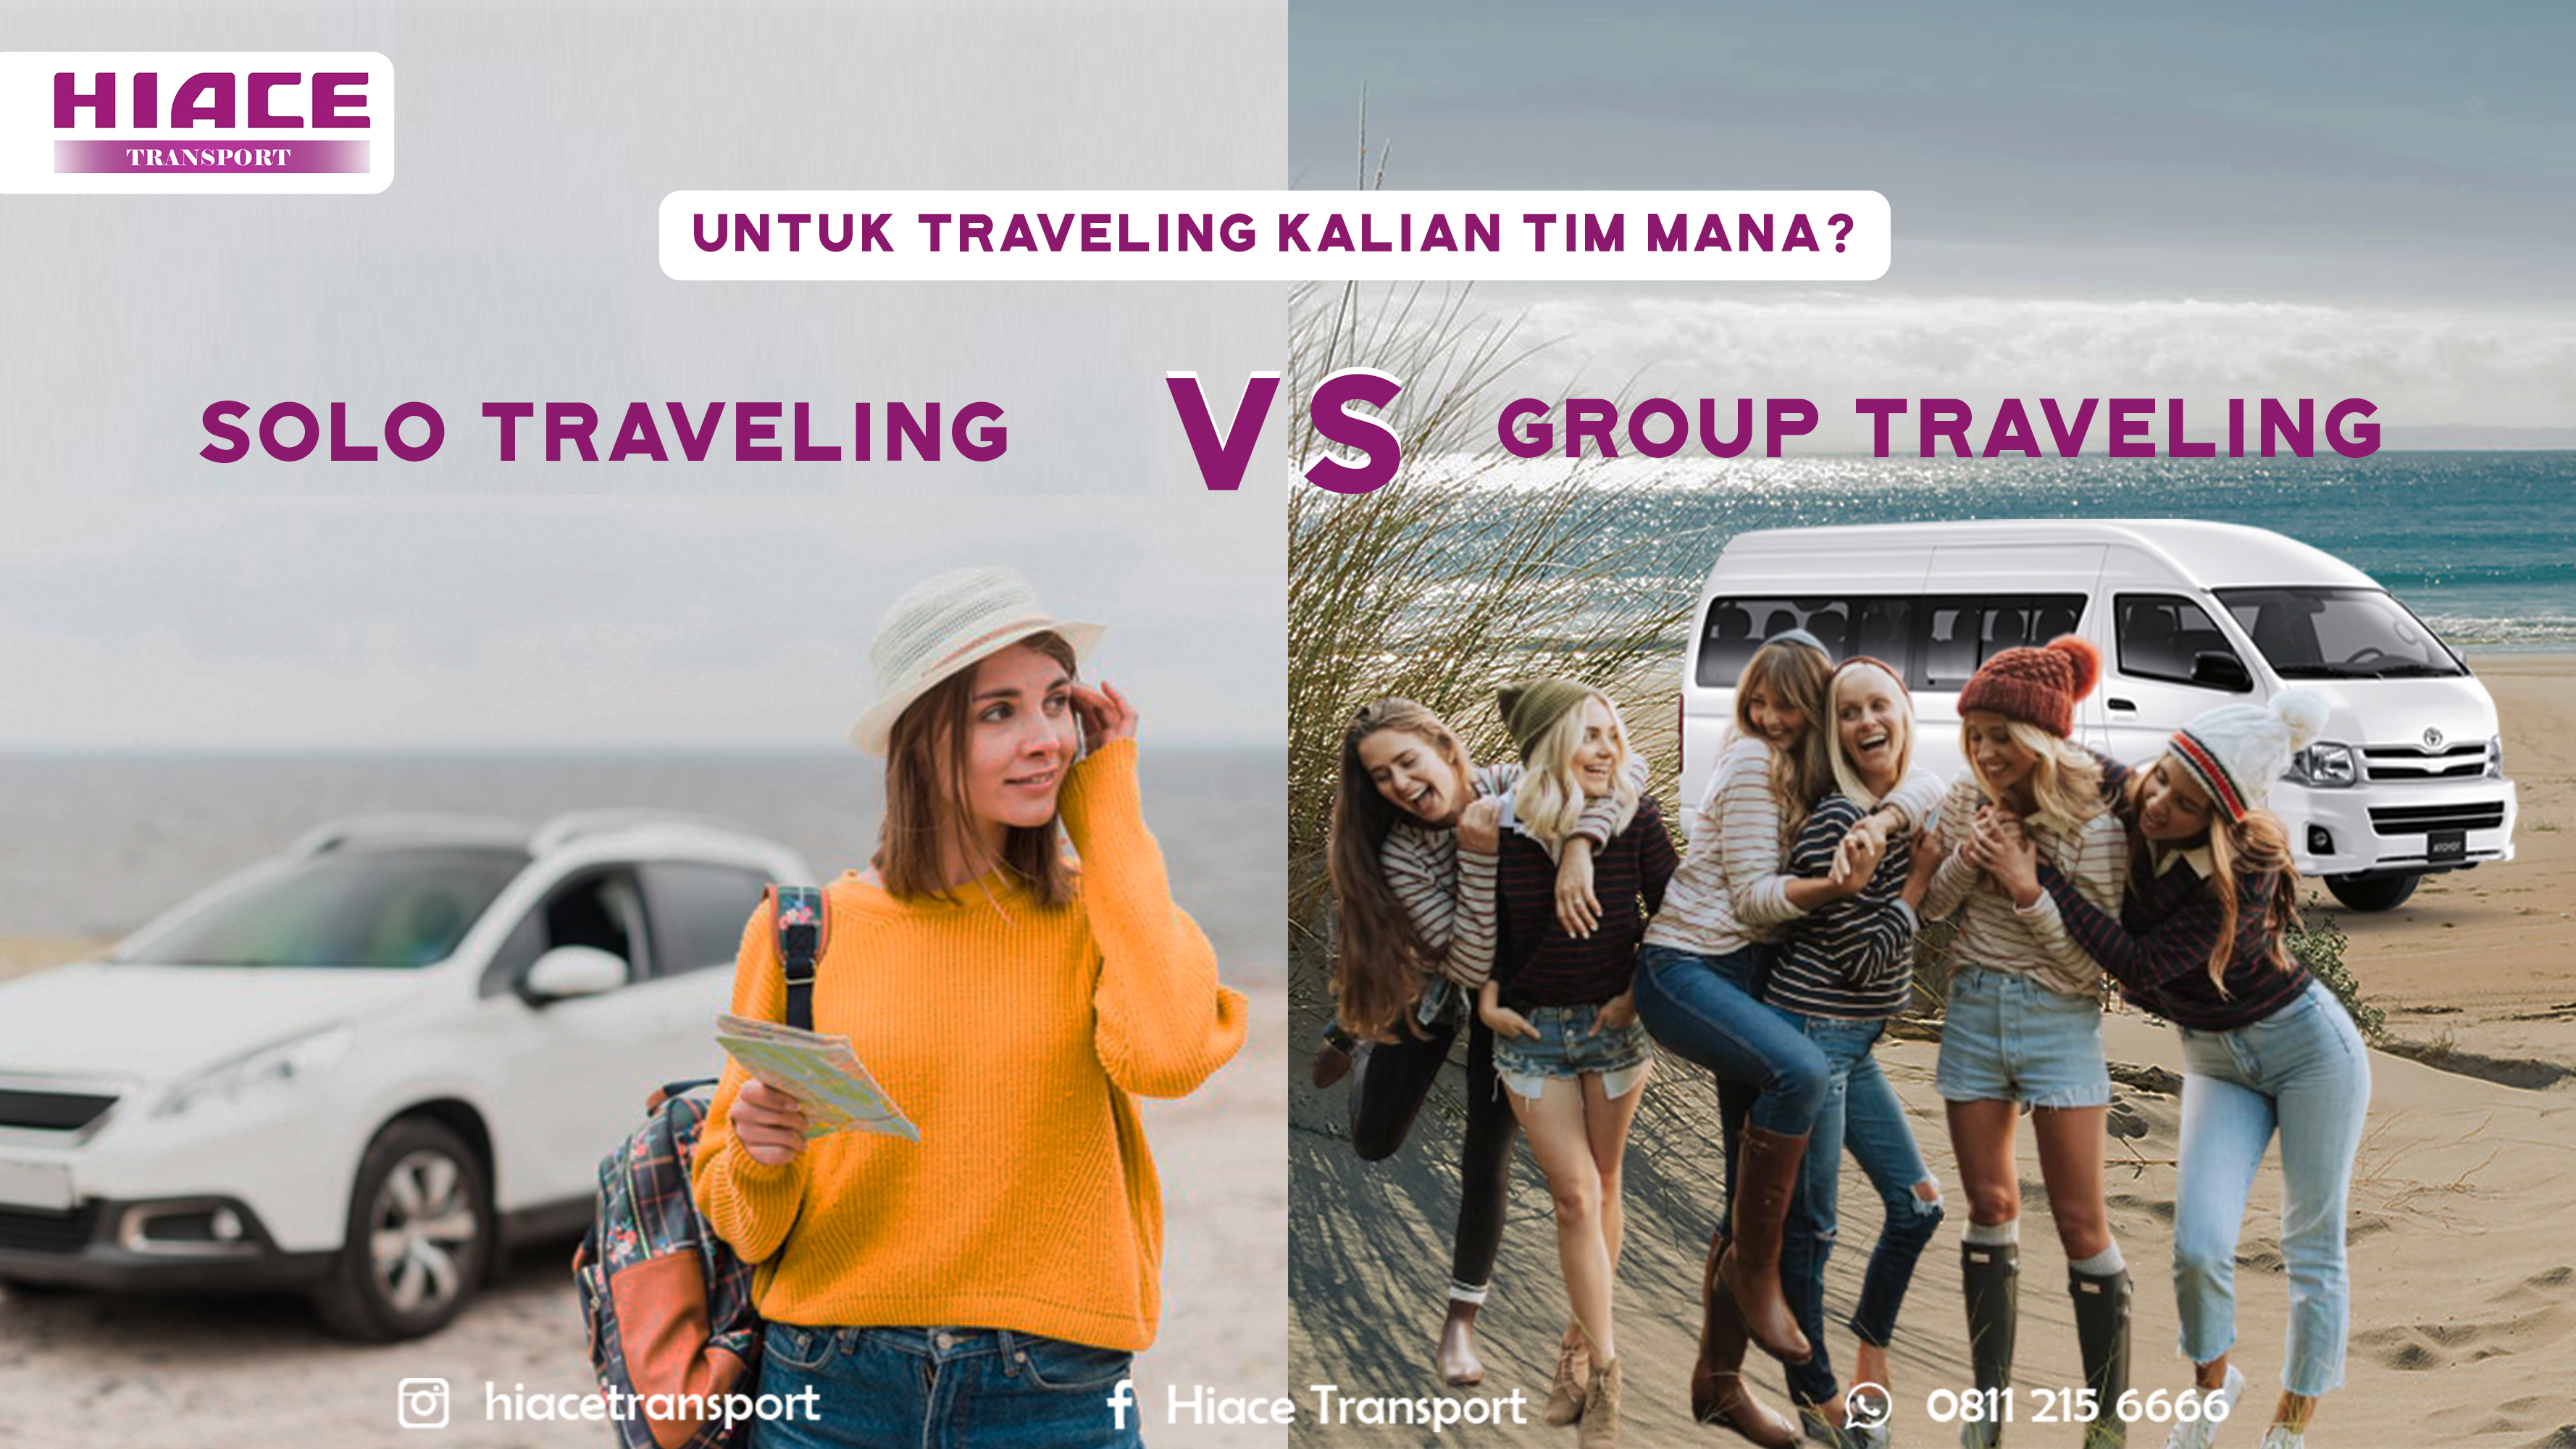 Solo traveling vs group traveling